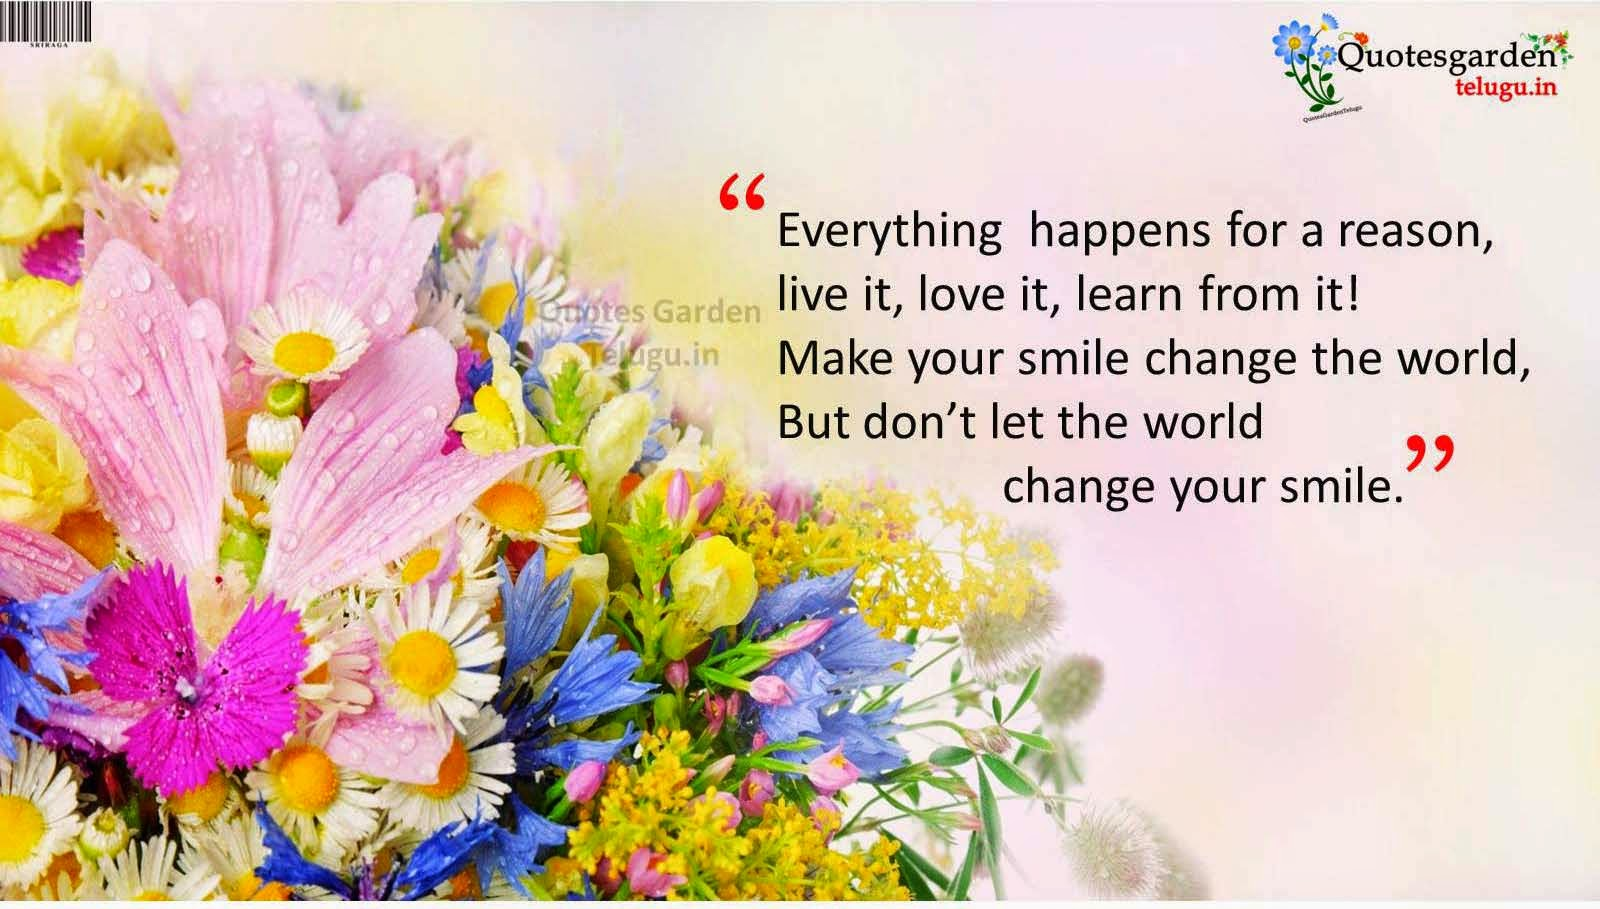 Morning Life Quotes Good Morning Quotes  Best English Quotes About Life With Images